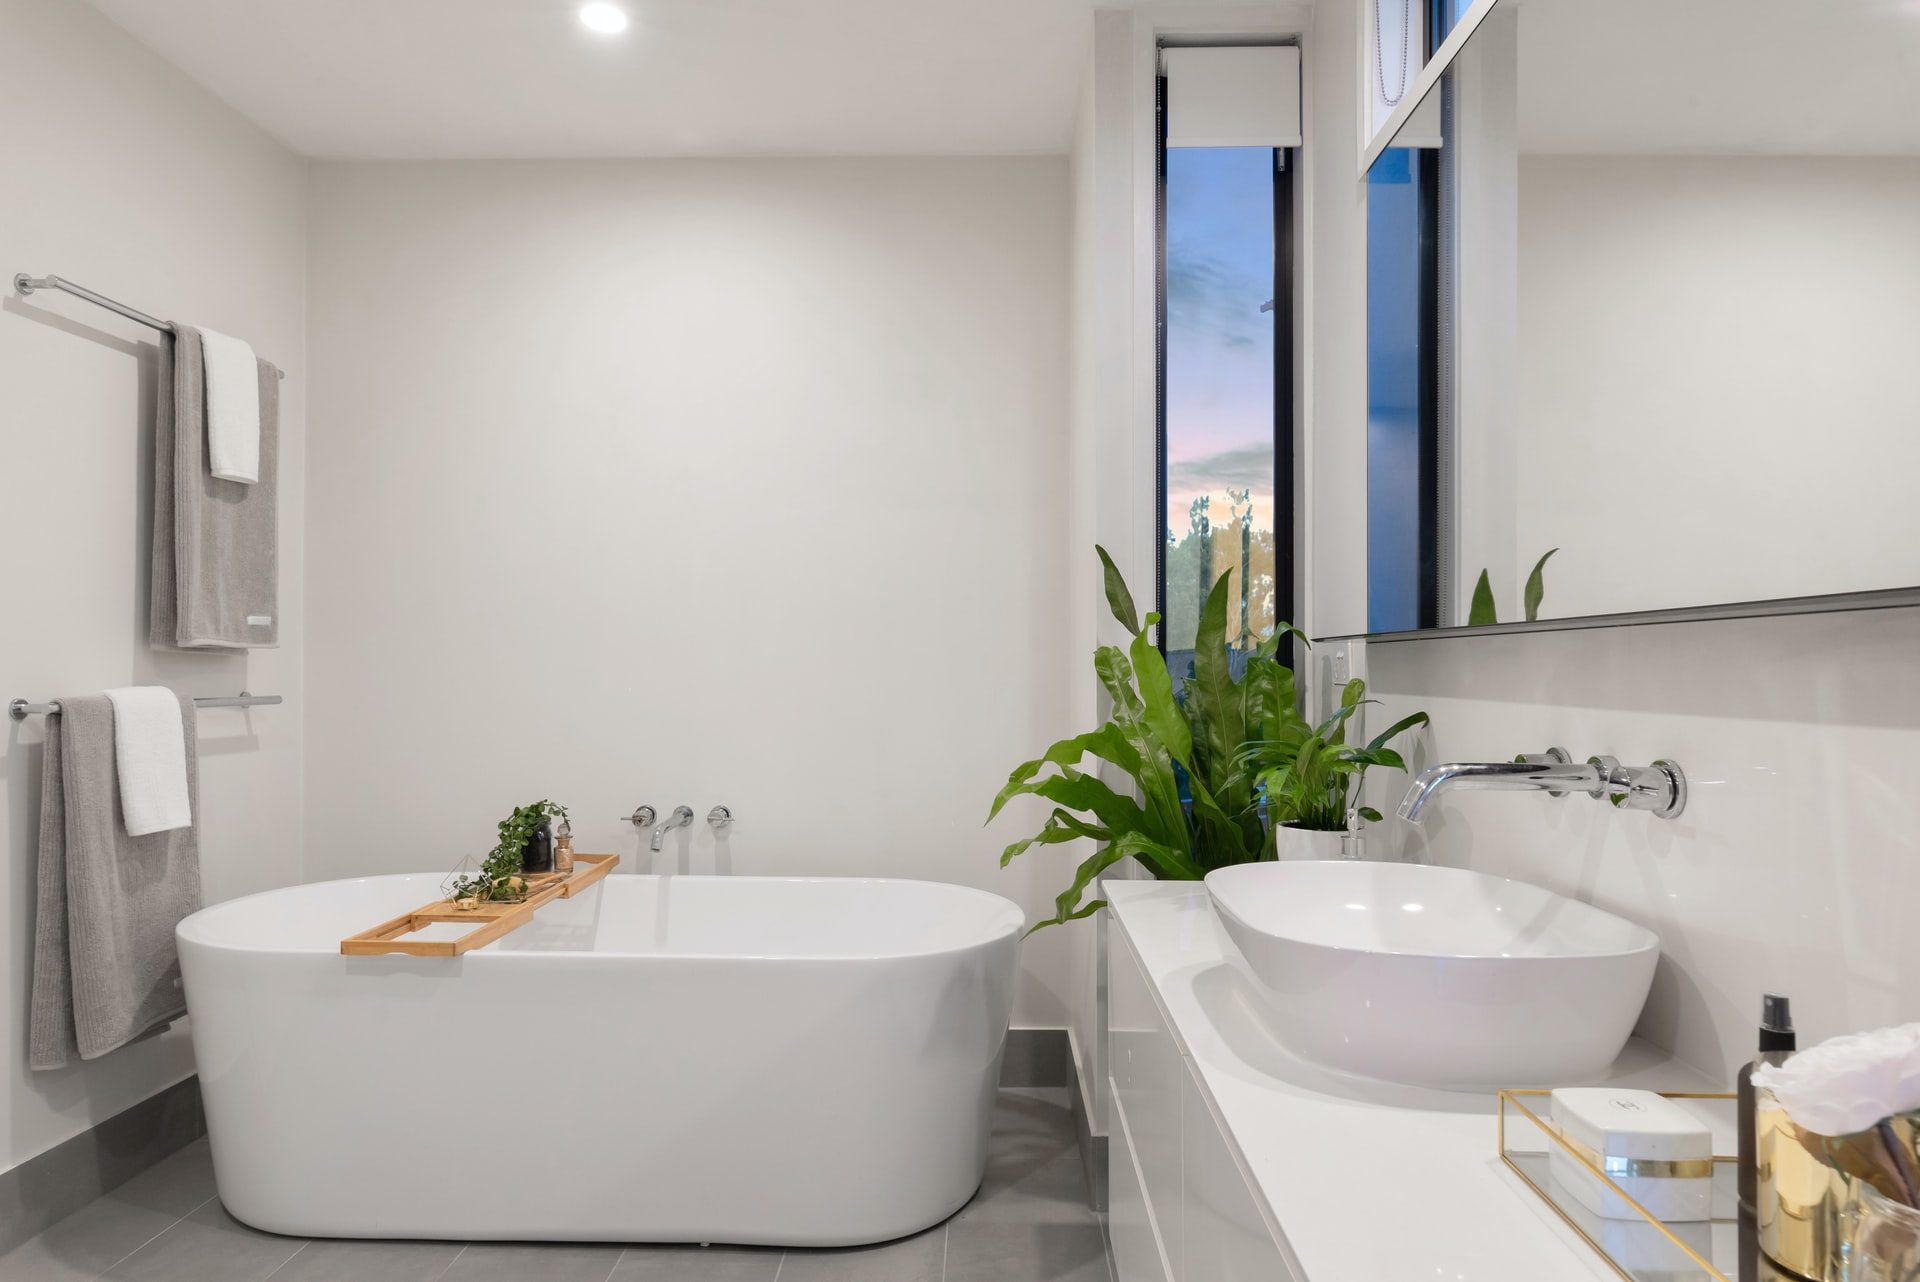 Bathroom Renovation – What Can I Get Done at My Budget?